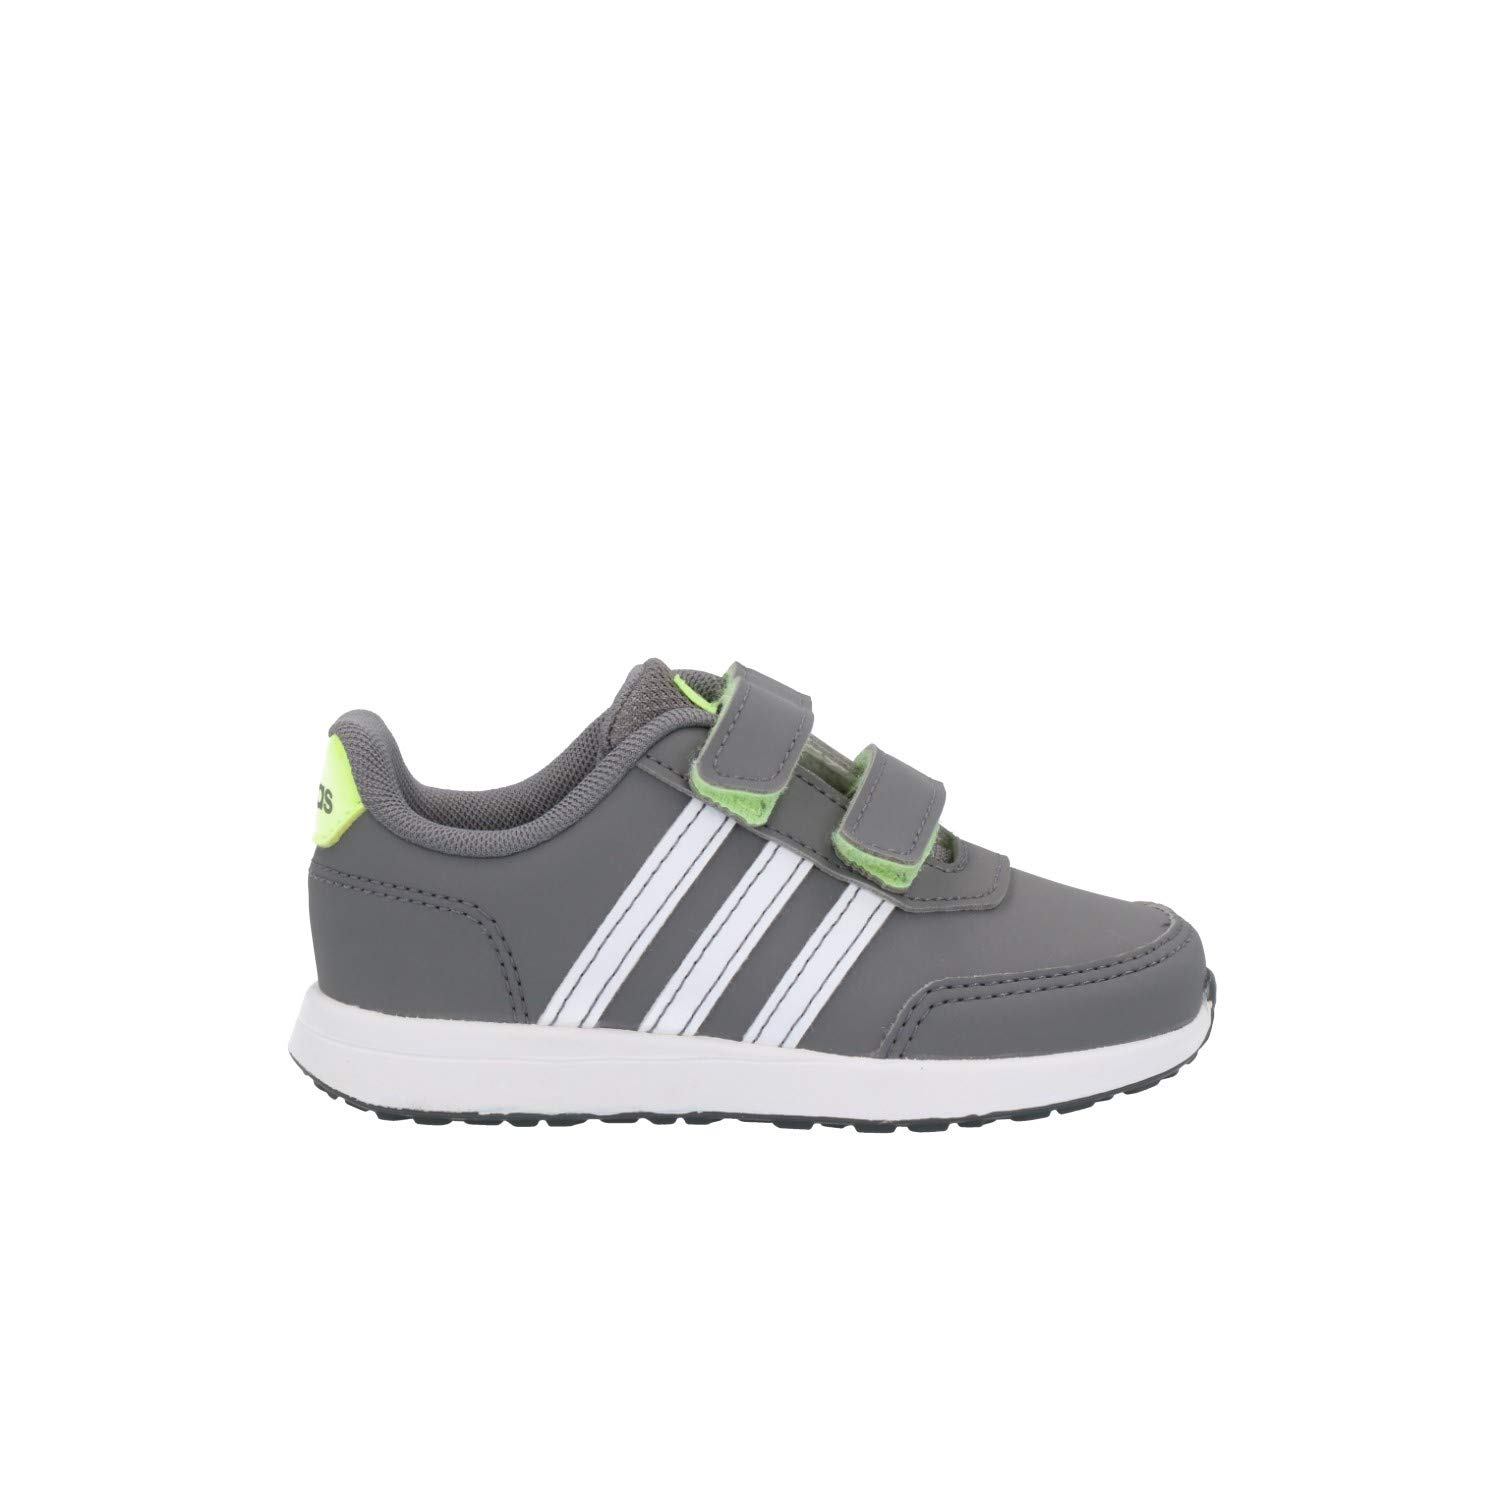 e18701dda3 Adidas Unisex-Kinder Vs Advantage Clean Sneakers, Weiß (Footwear ...